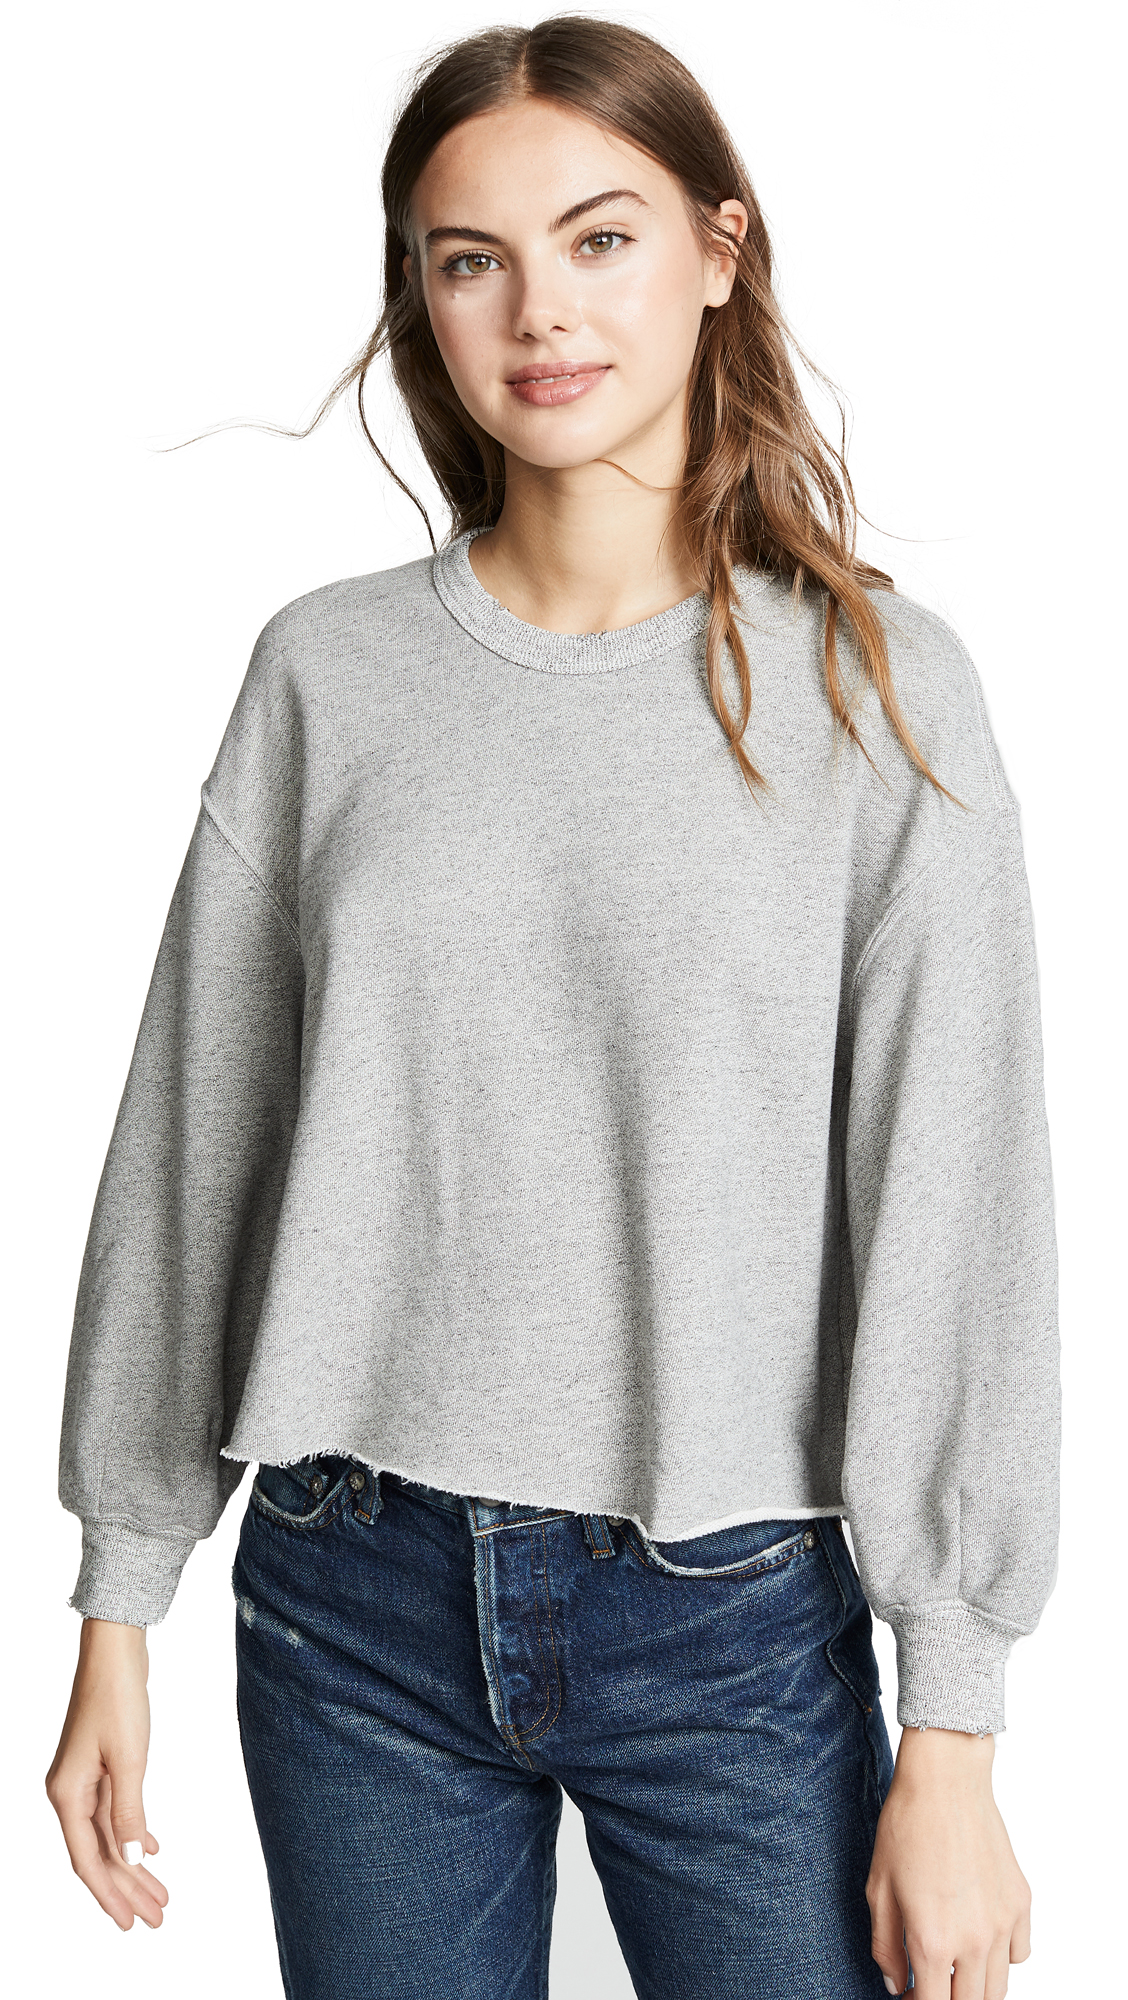 The Great THE CUTOFF SWEATSHIRT